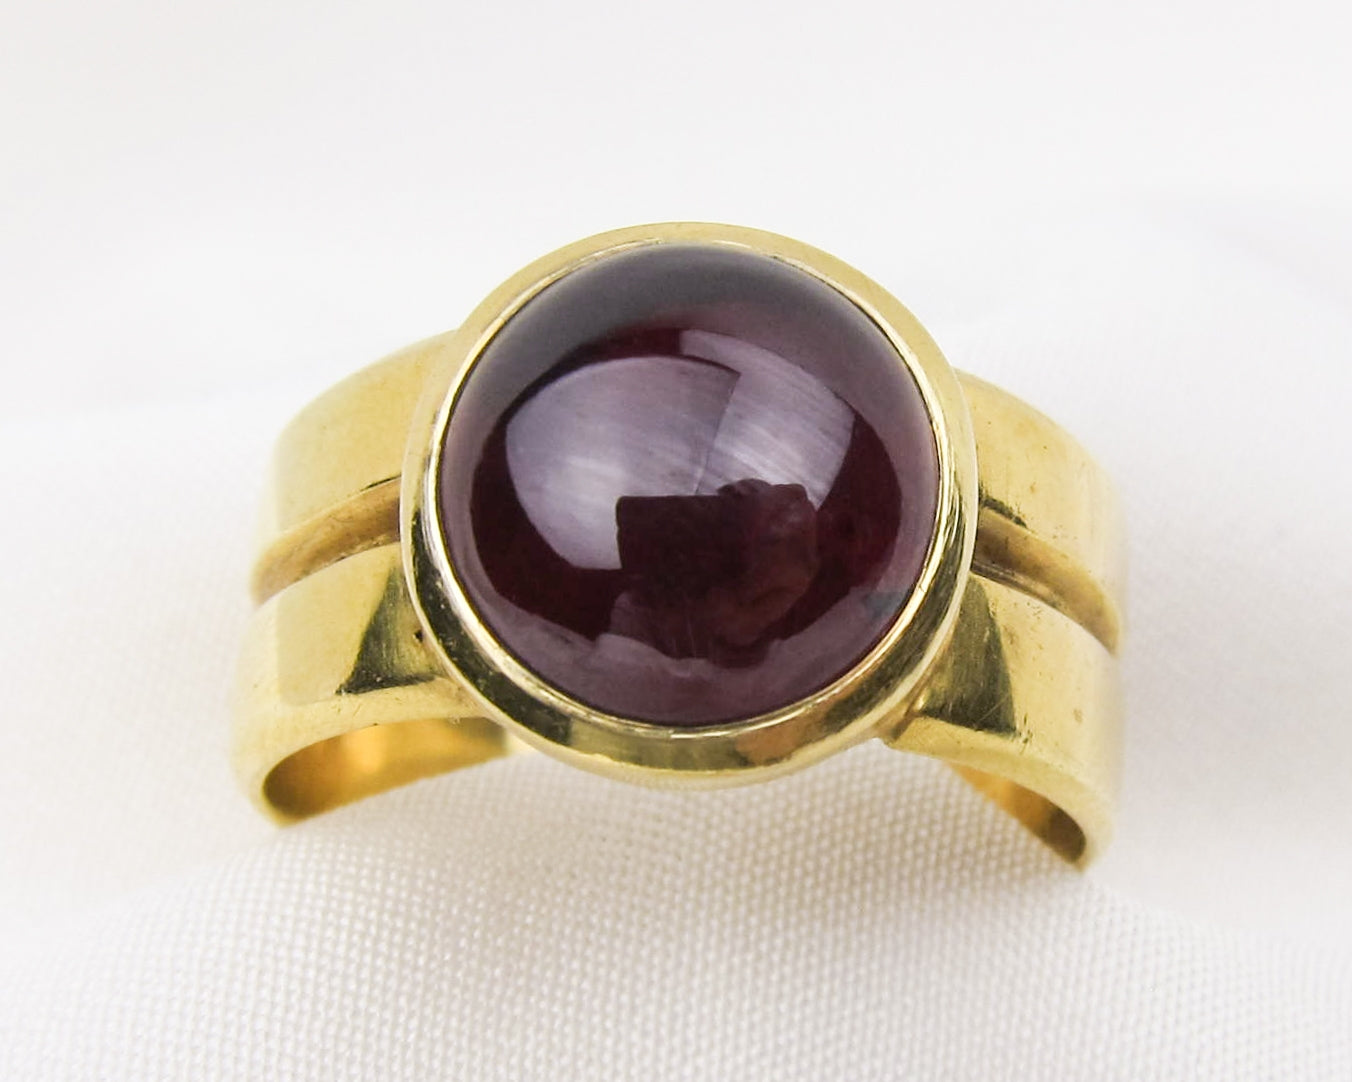 victorian-18KT-gold-garnet-cabochon-ring-band